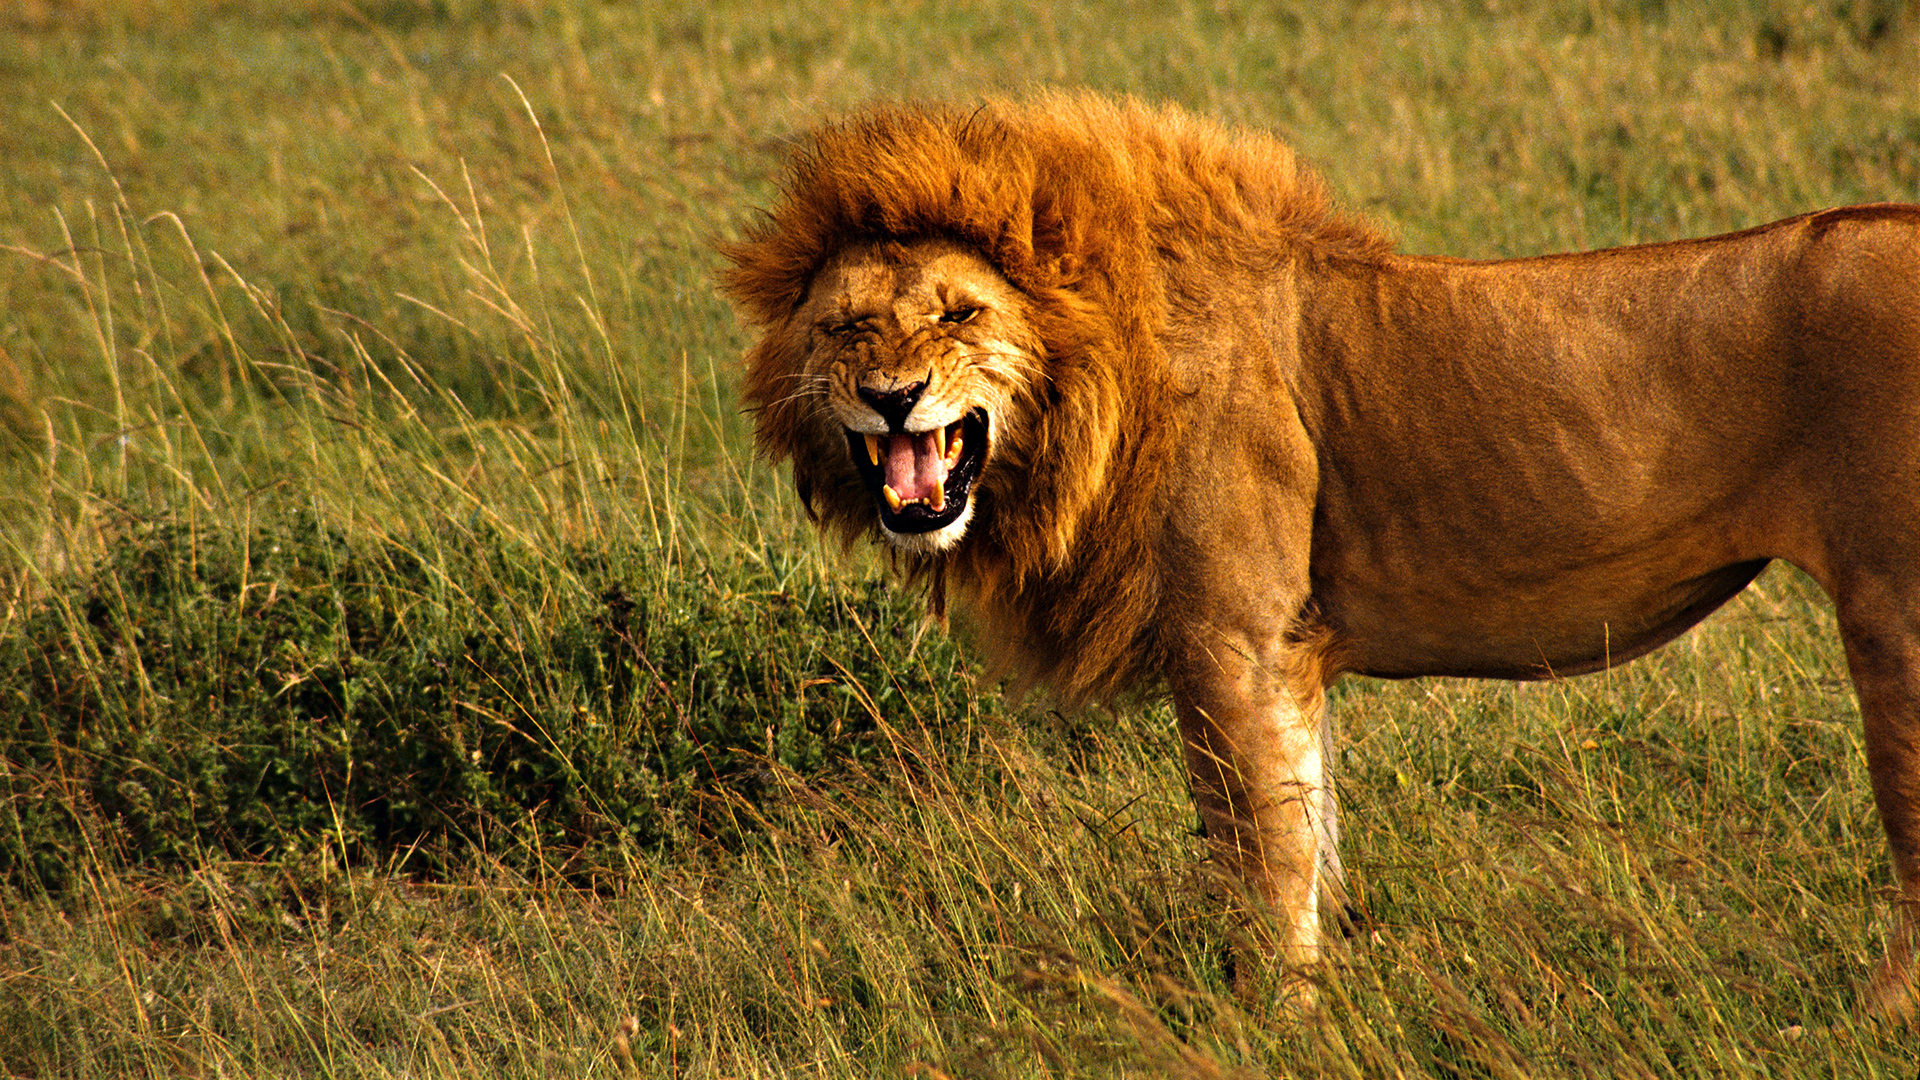 Angry-lion-wallpaper-wp3402409